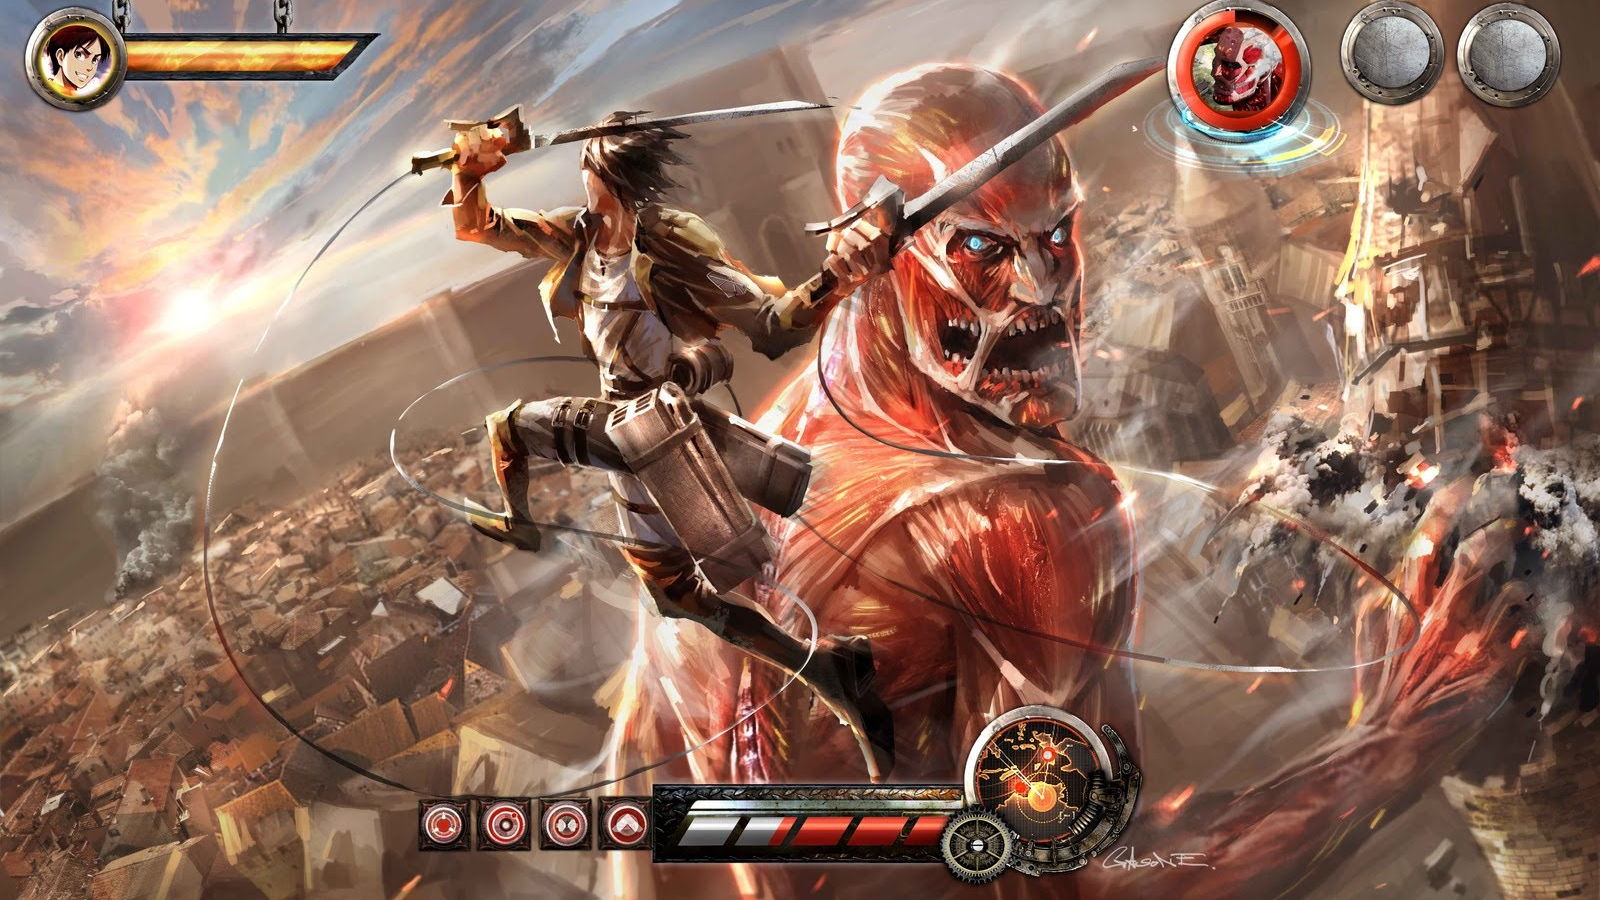 Free Download Attack On Titan Is Heading To The Ps3 Ps3 News